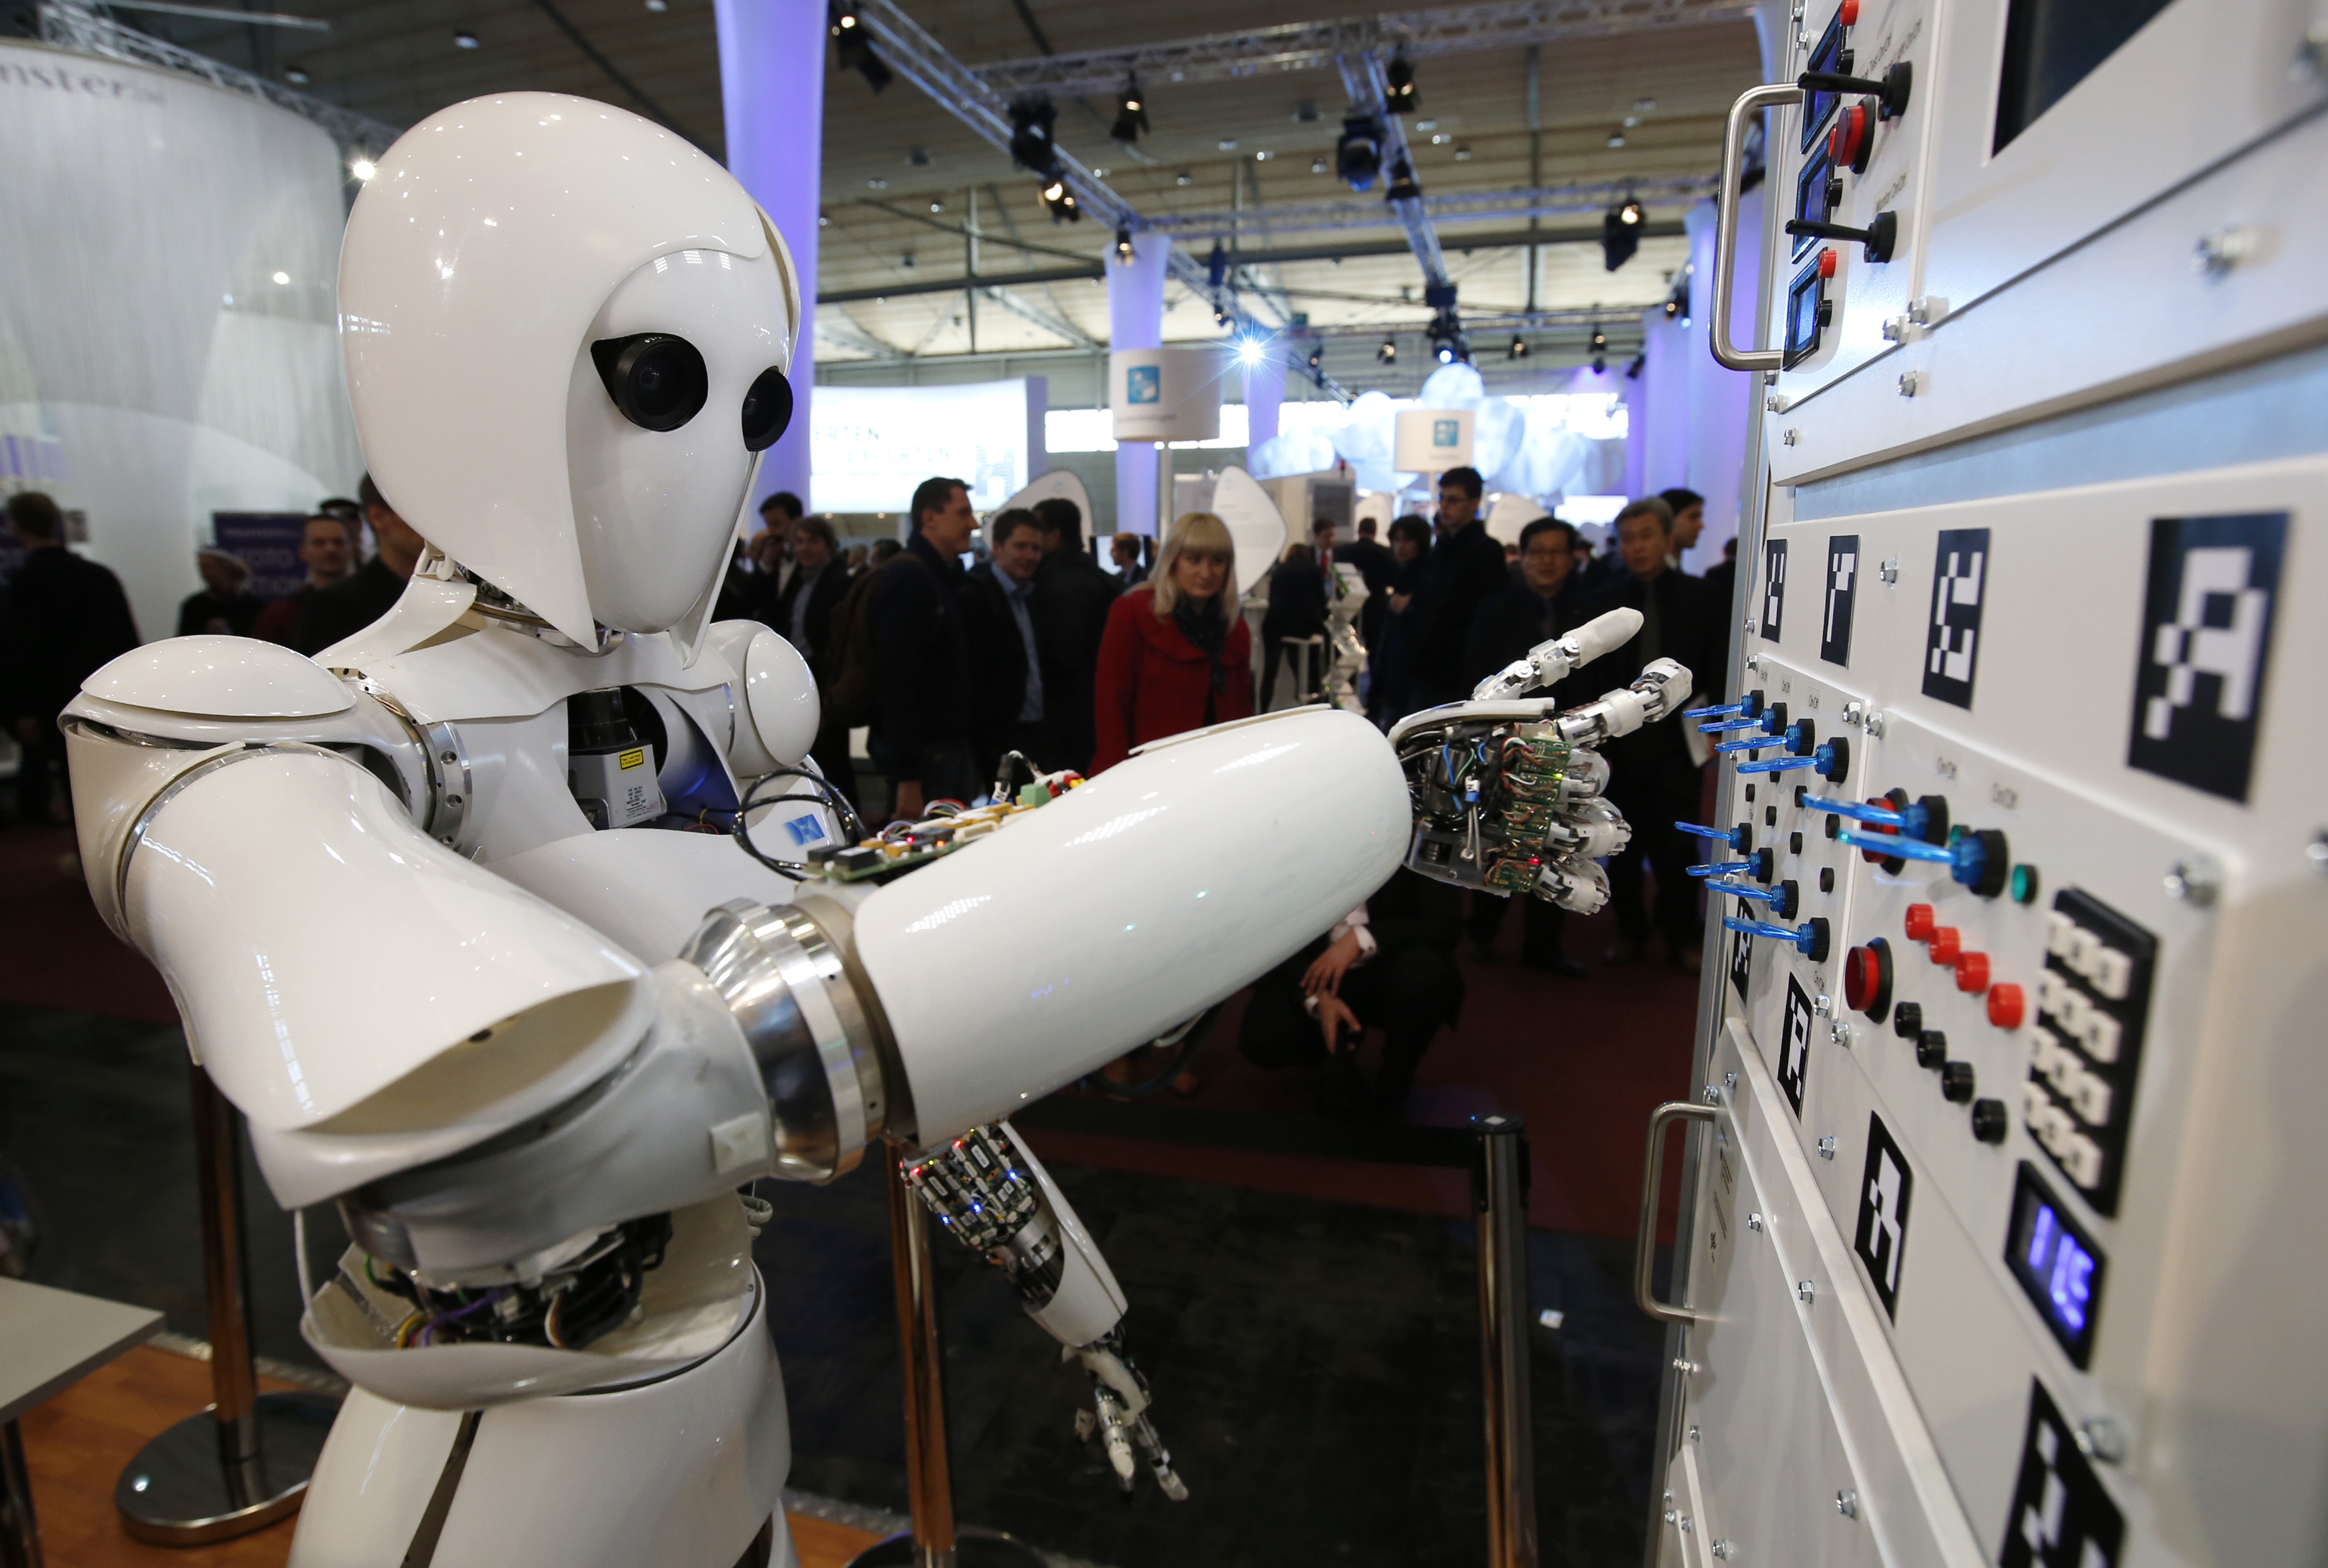 7 Ways robots can impact politics